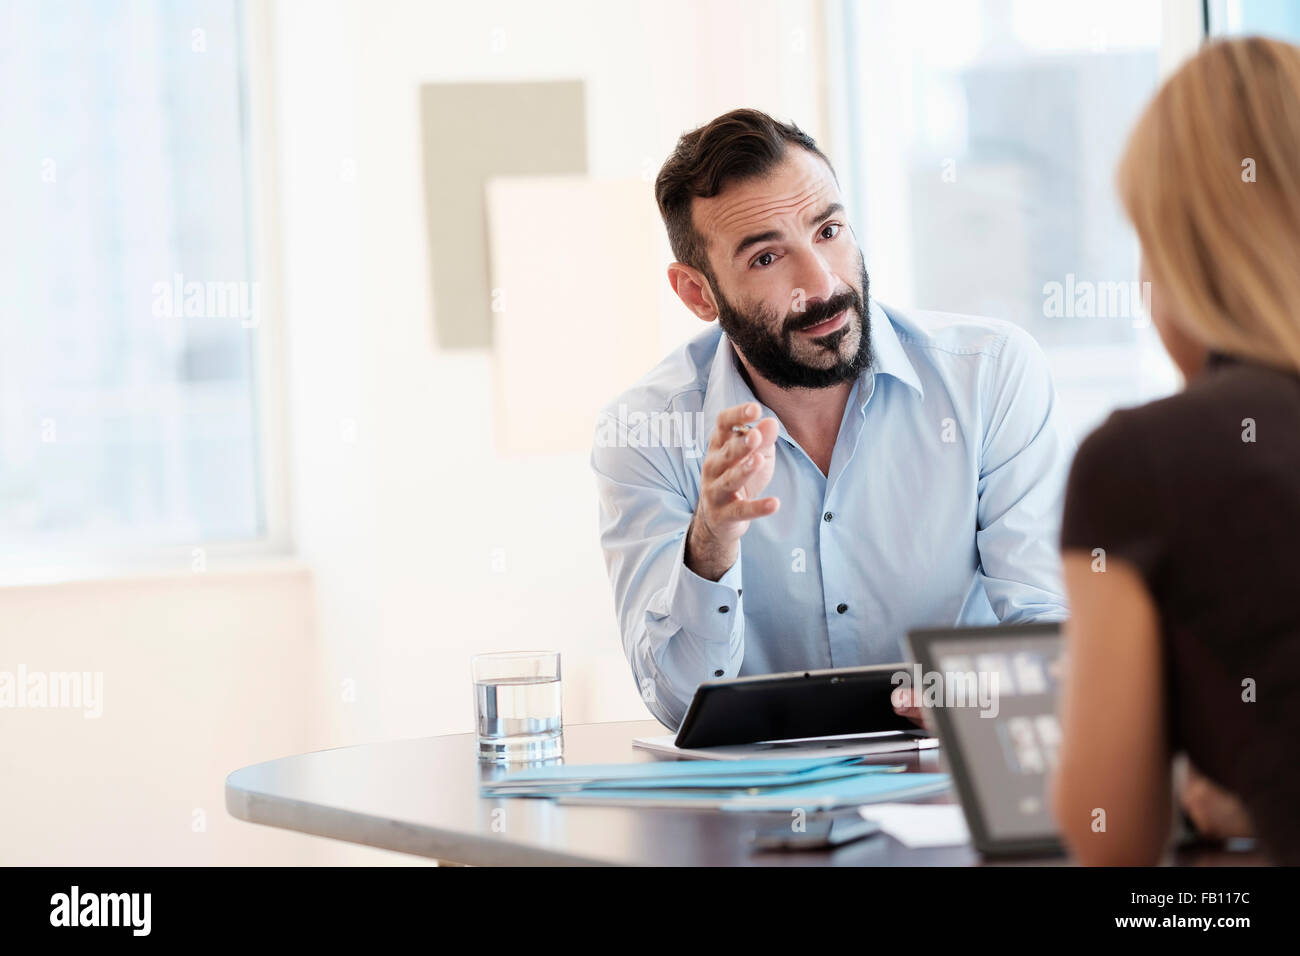 Man and woman talking in office - Stock Image